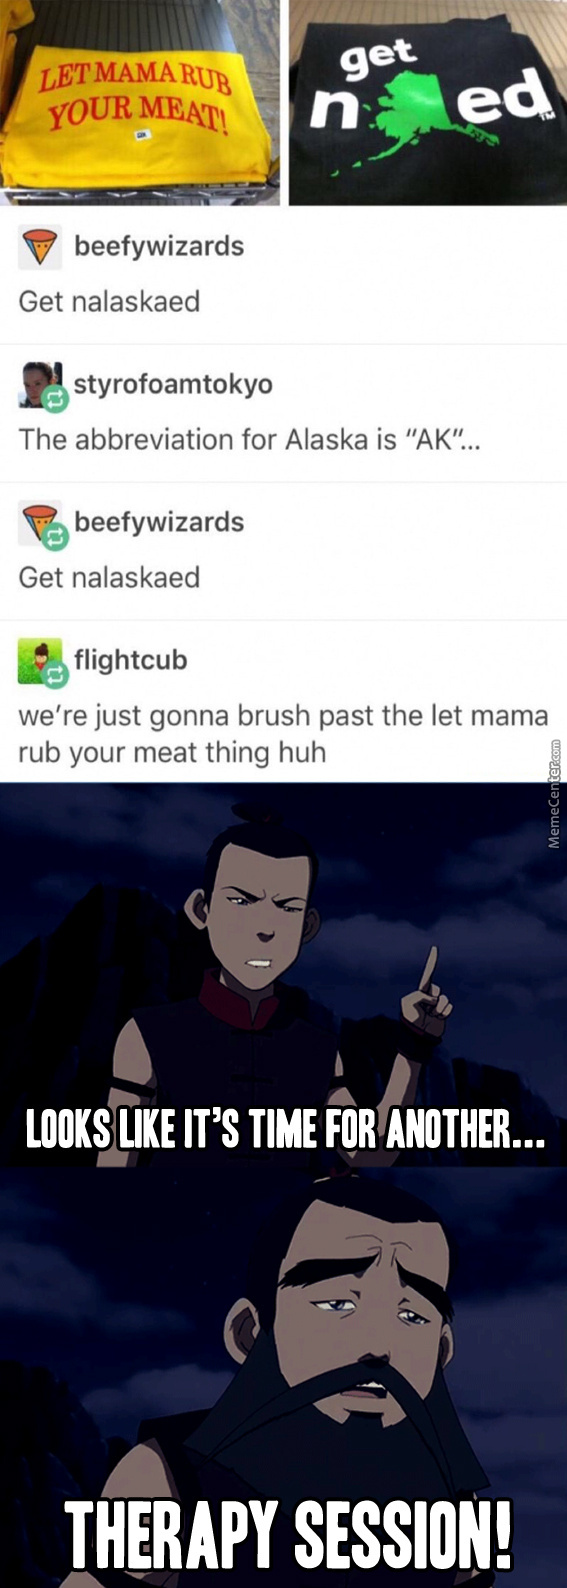 Do You Kiss Your Mother With That Mouth?